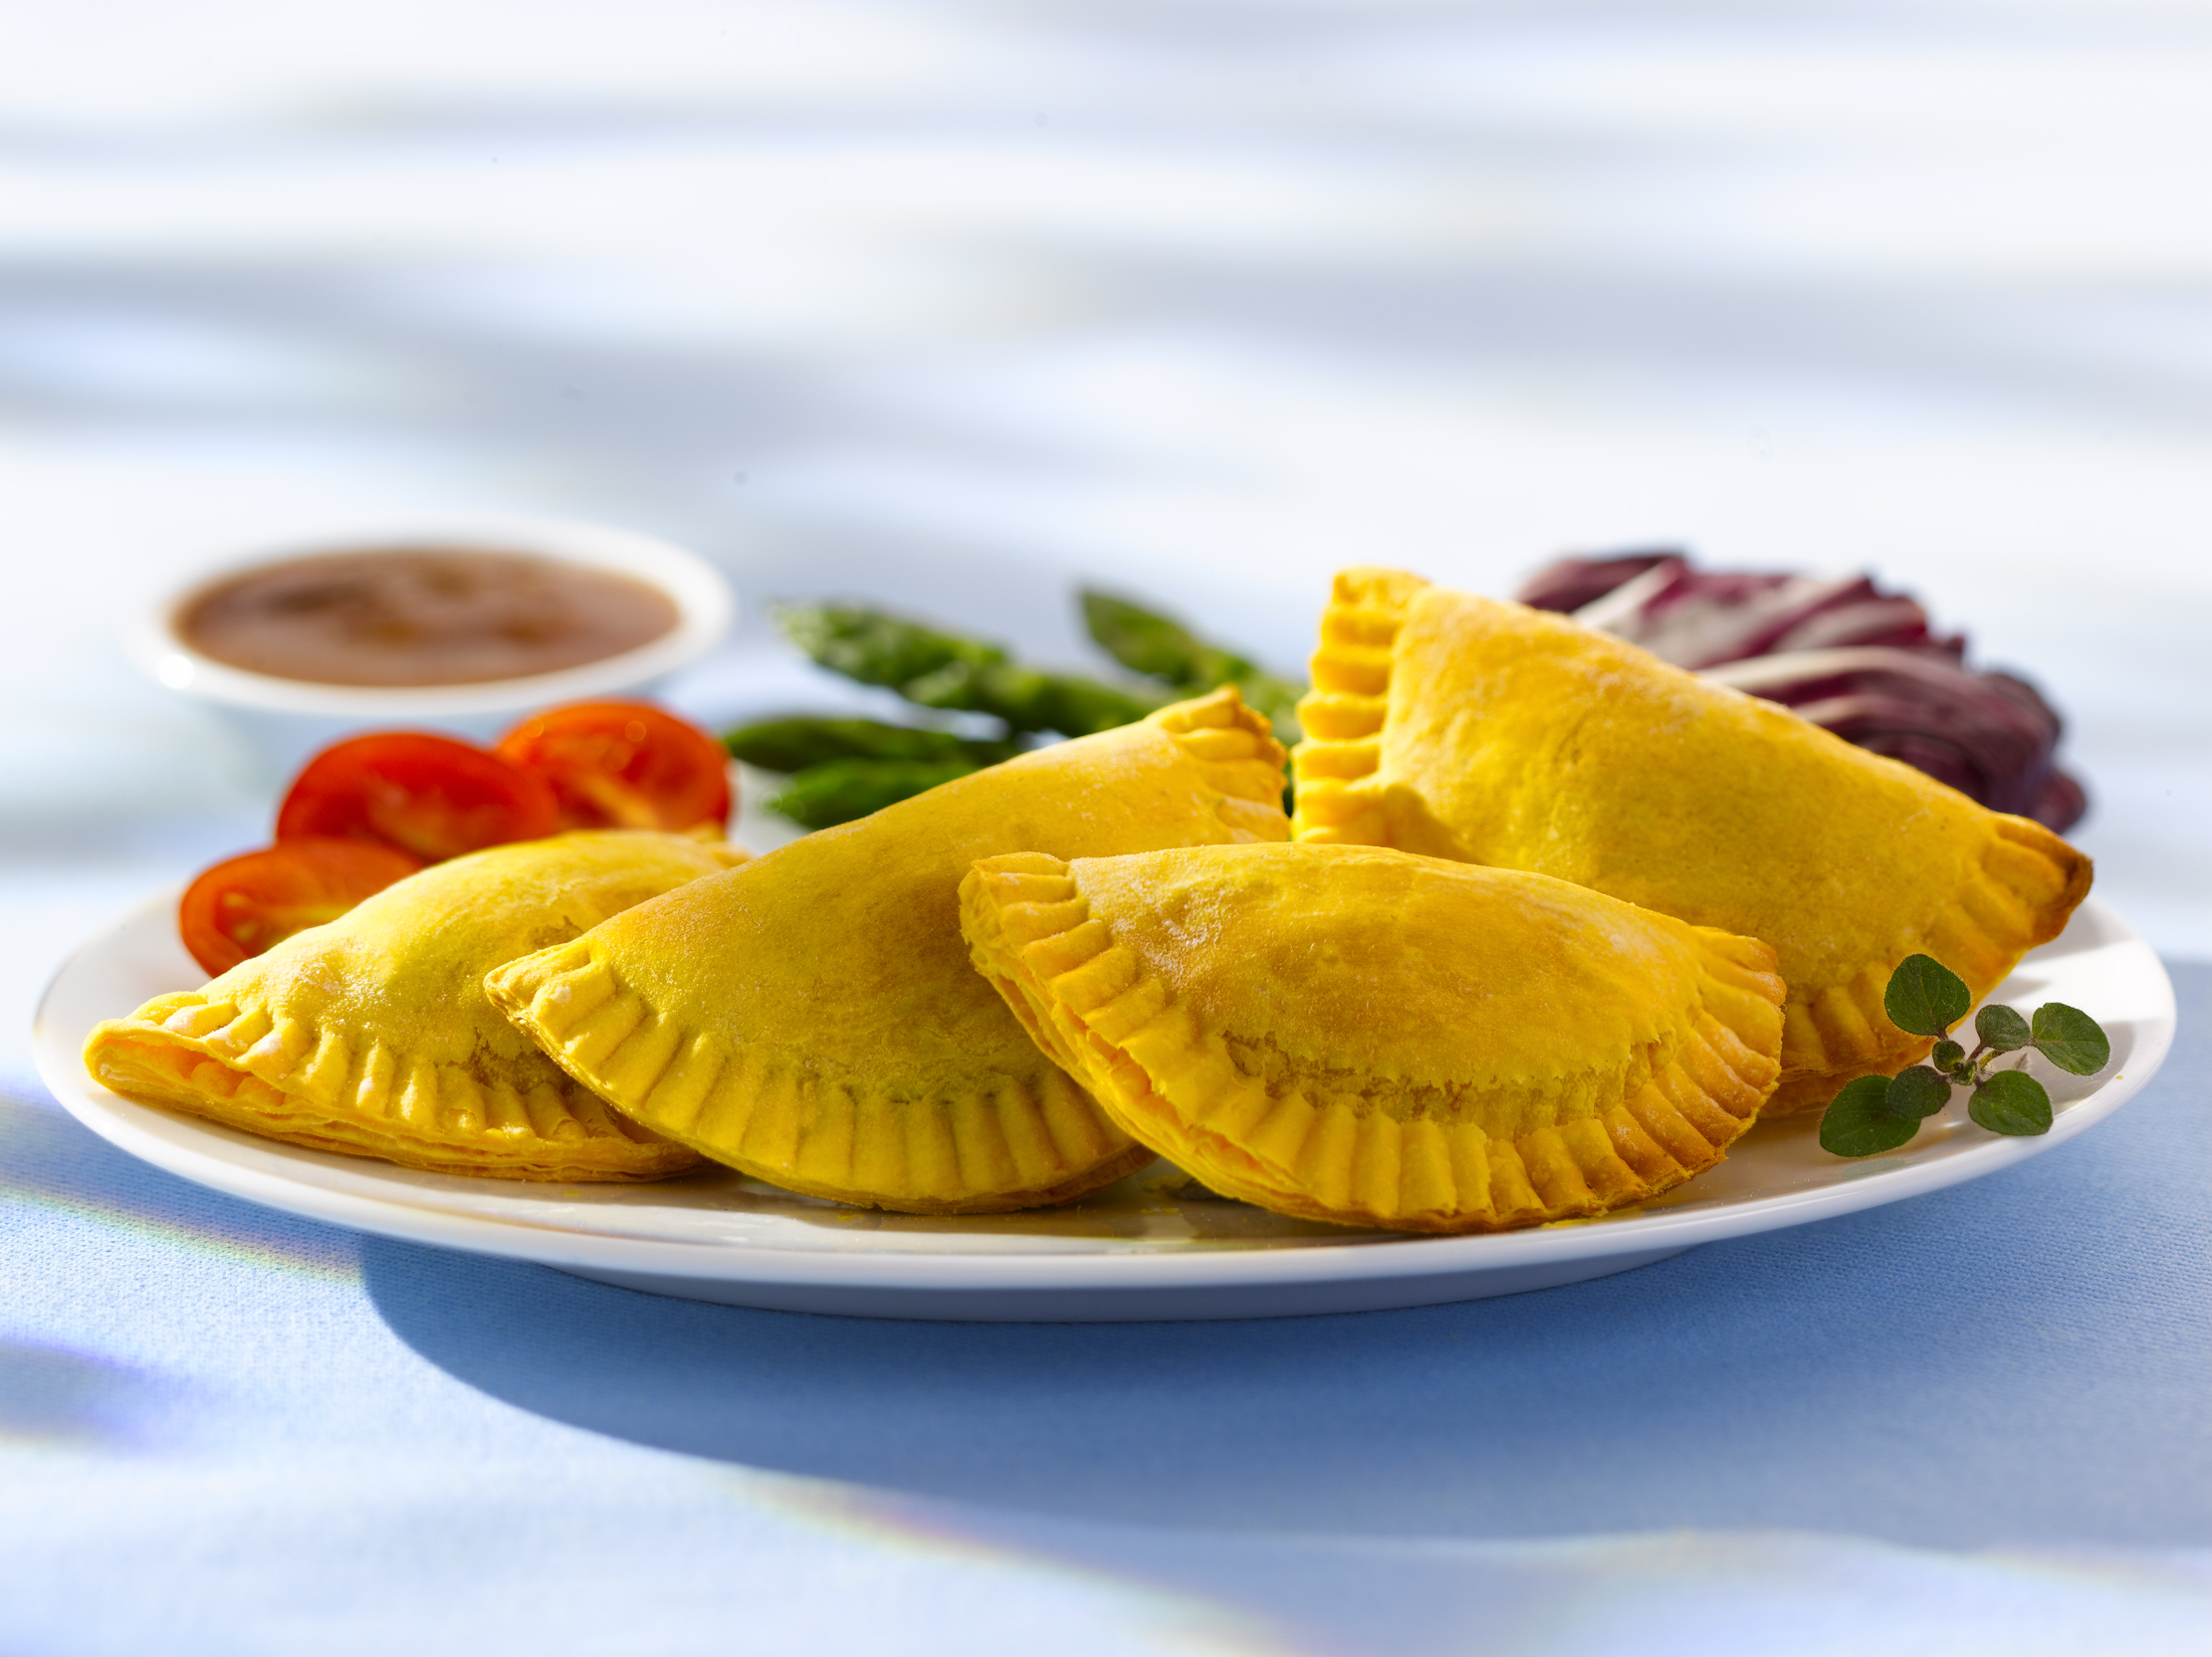 A Jamaican patty from Toronto's Patty